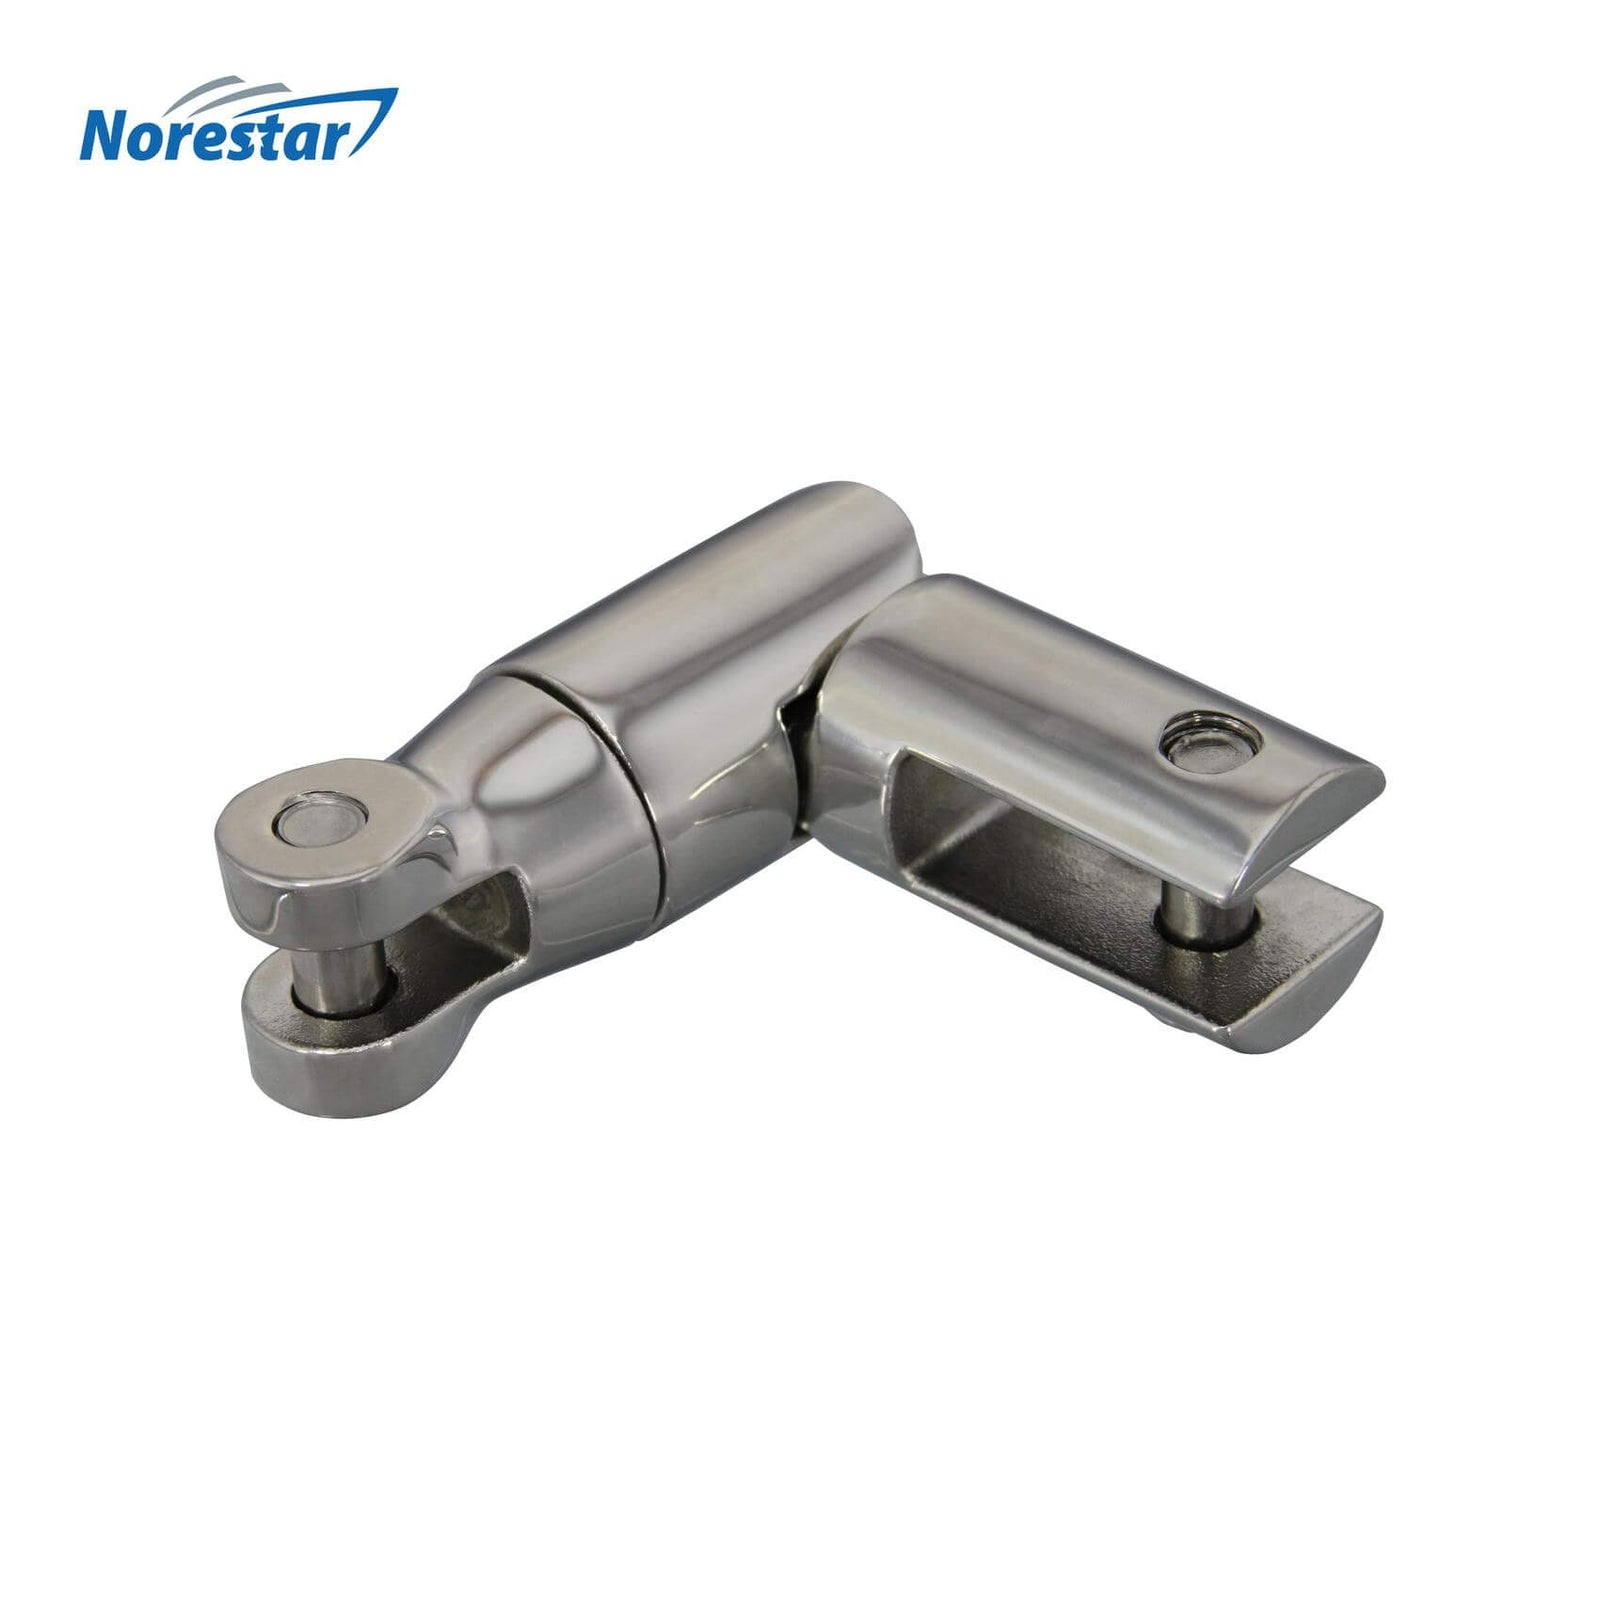 Norestar Stainless Steel Multidirectional Anchor Swivel